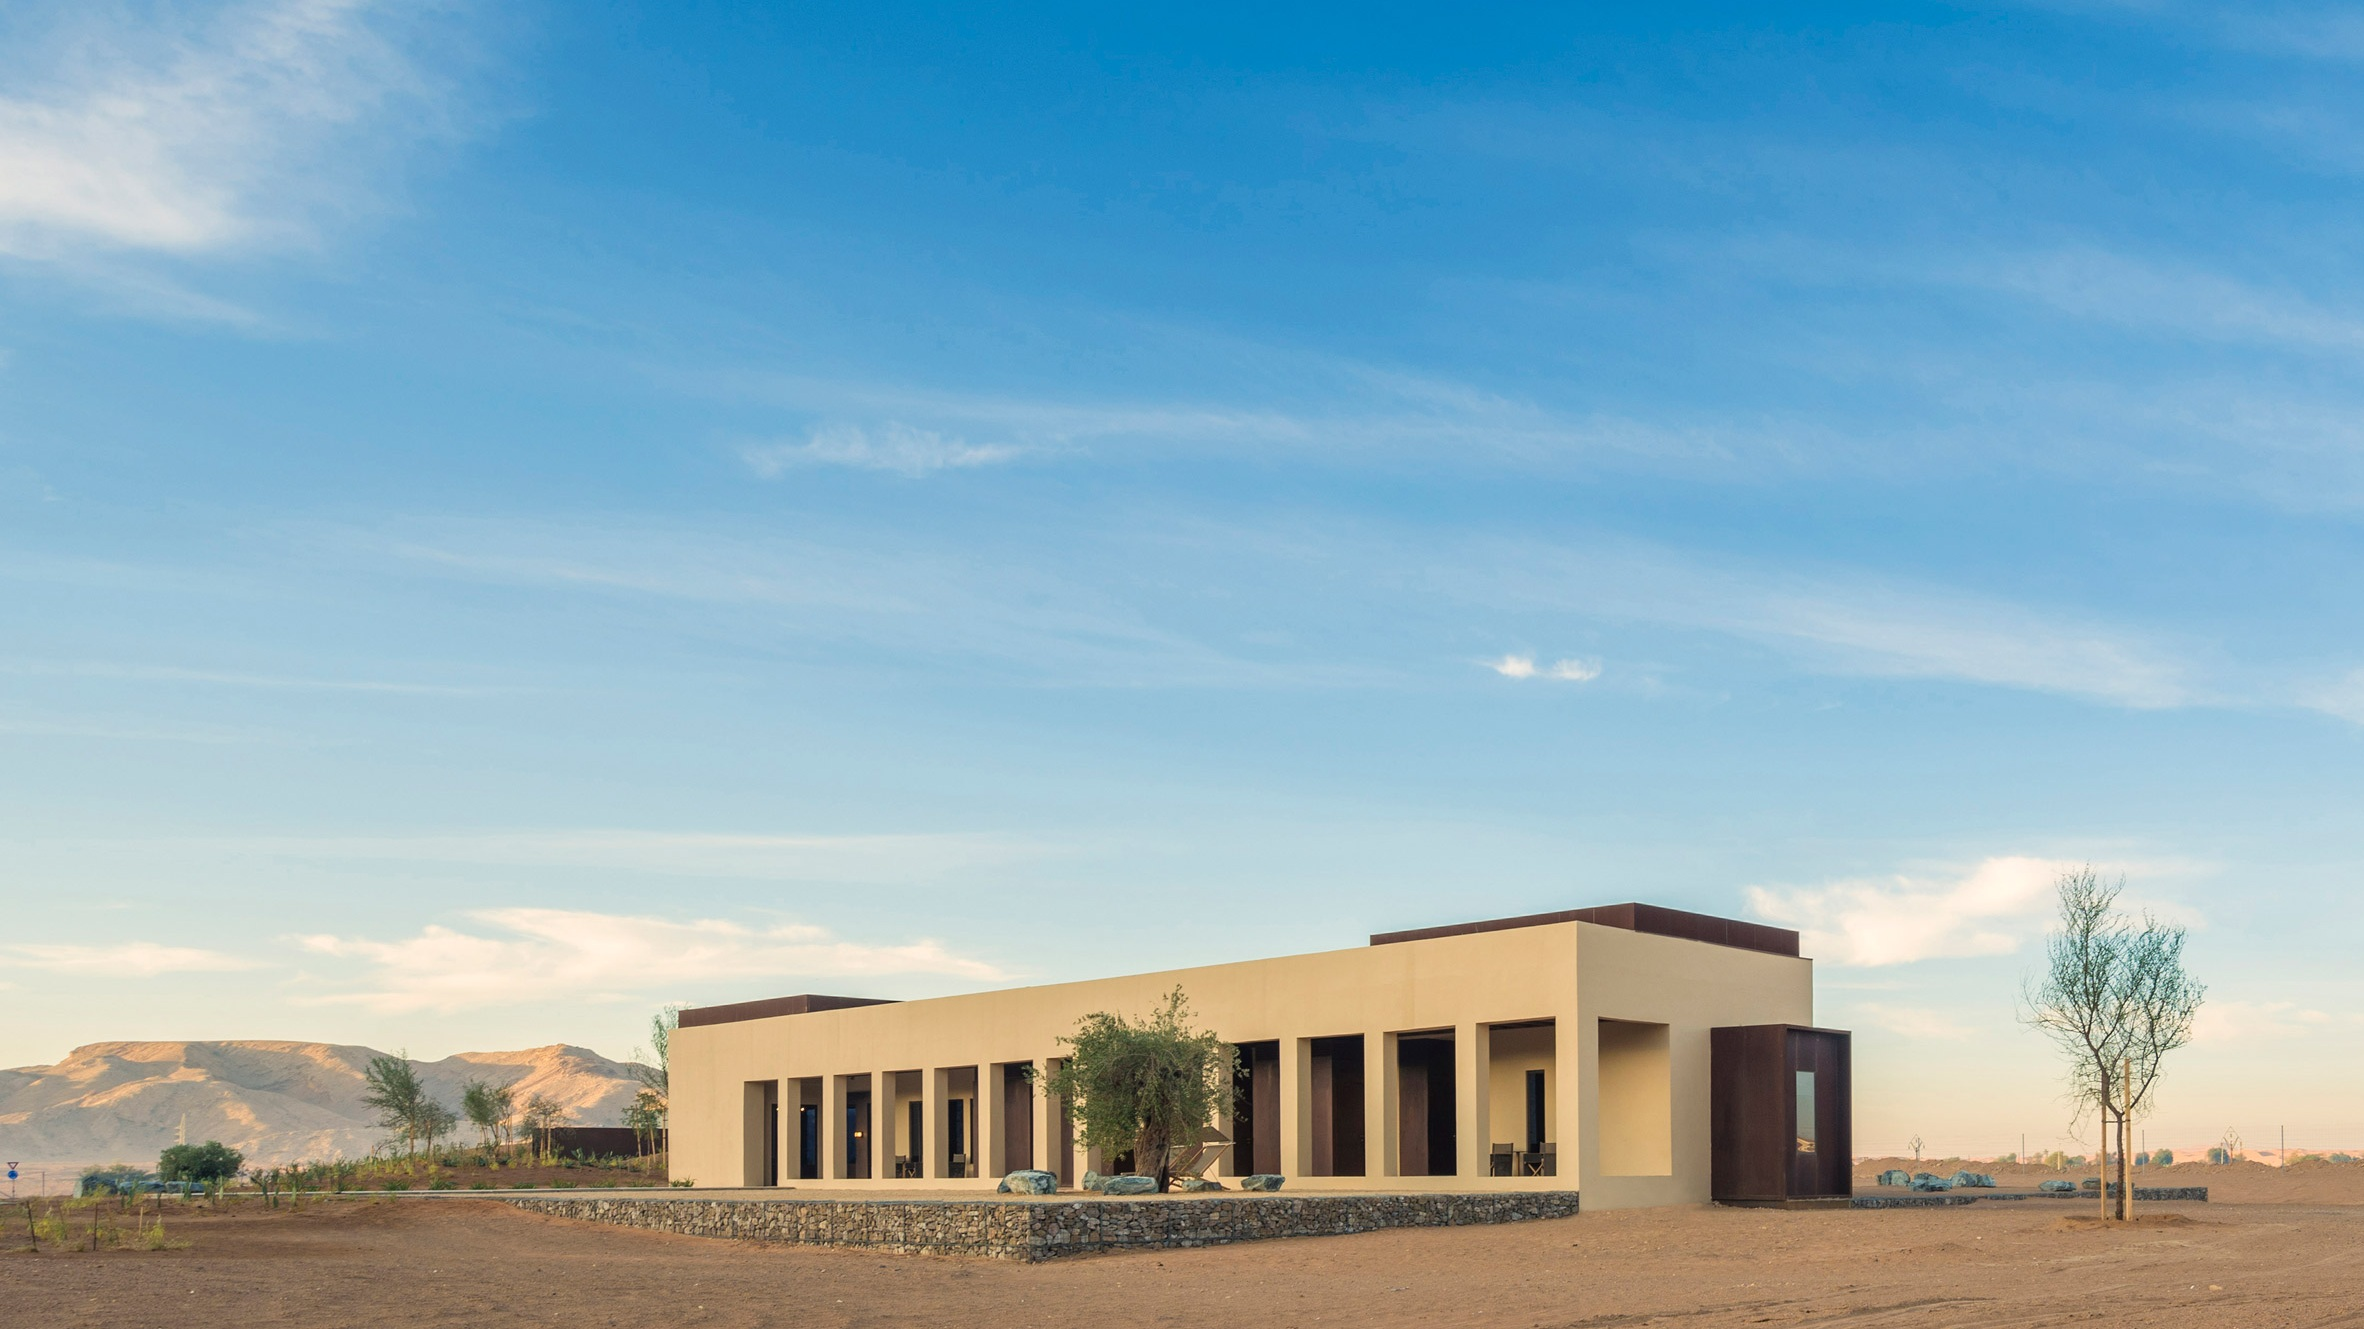 al-faya-lodge-anarchitects-architecture-photography-fernando-guerra-_dezeen_2364_col_3.jpg